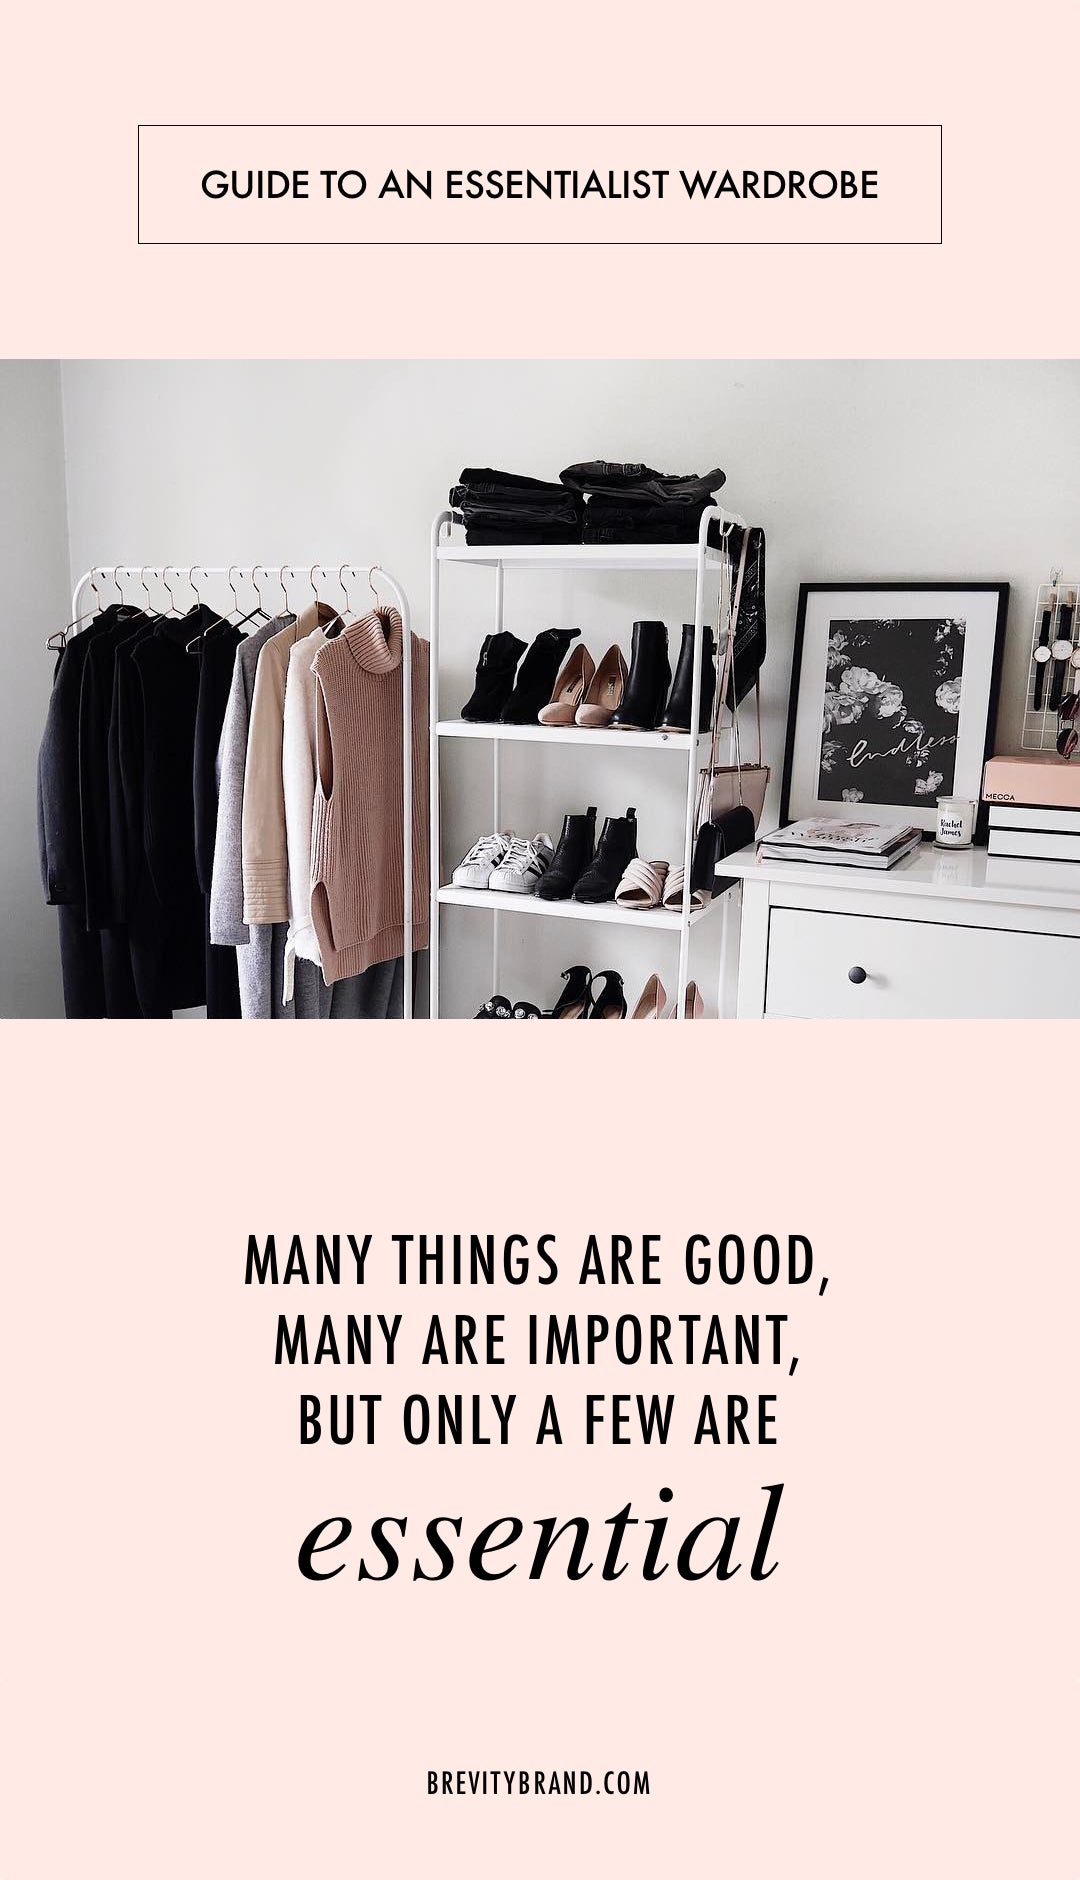 Guide to An Essentialist Wardrobe